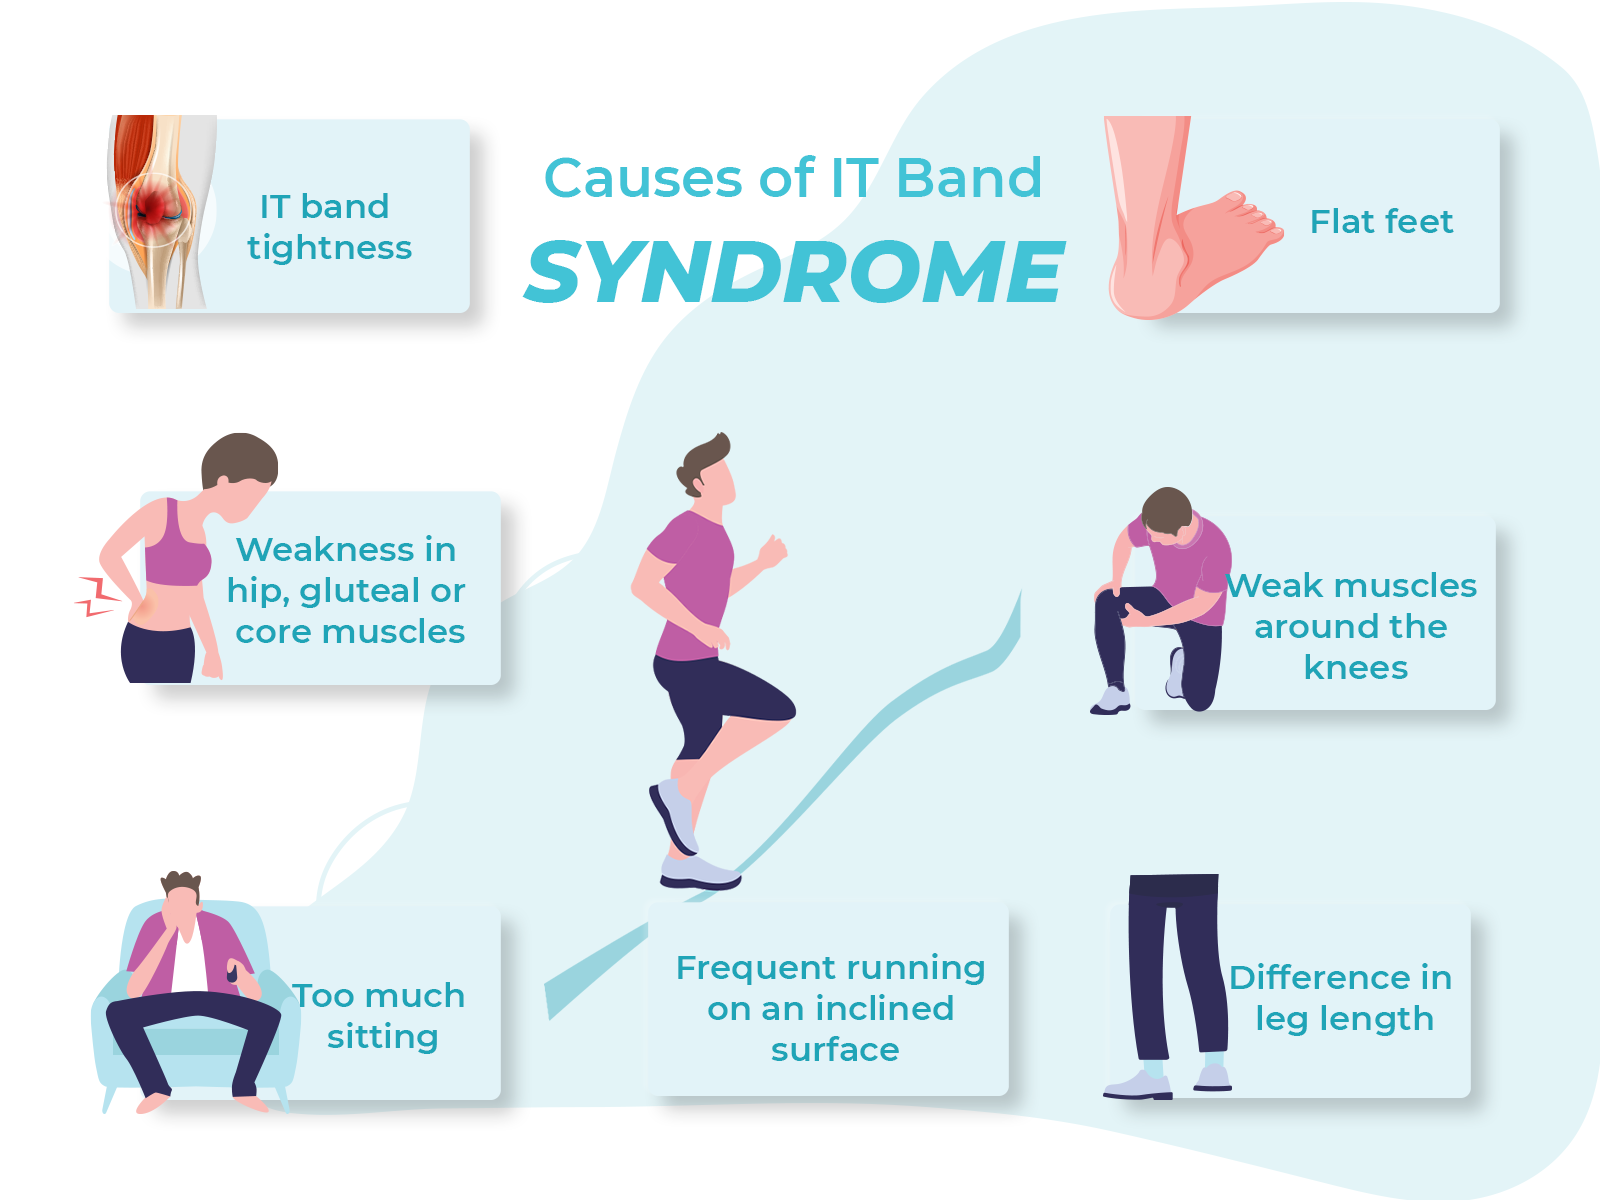 Causes of IT Band Syndrome